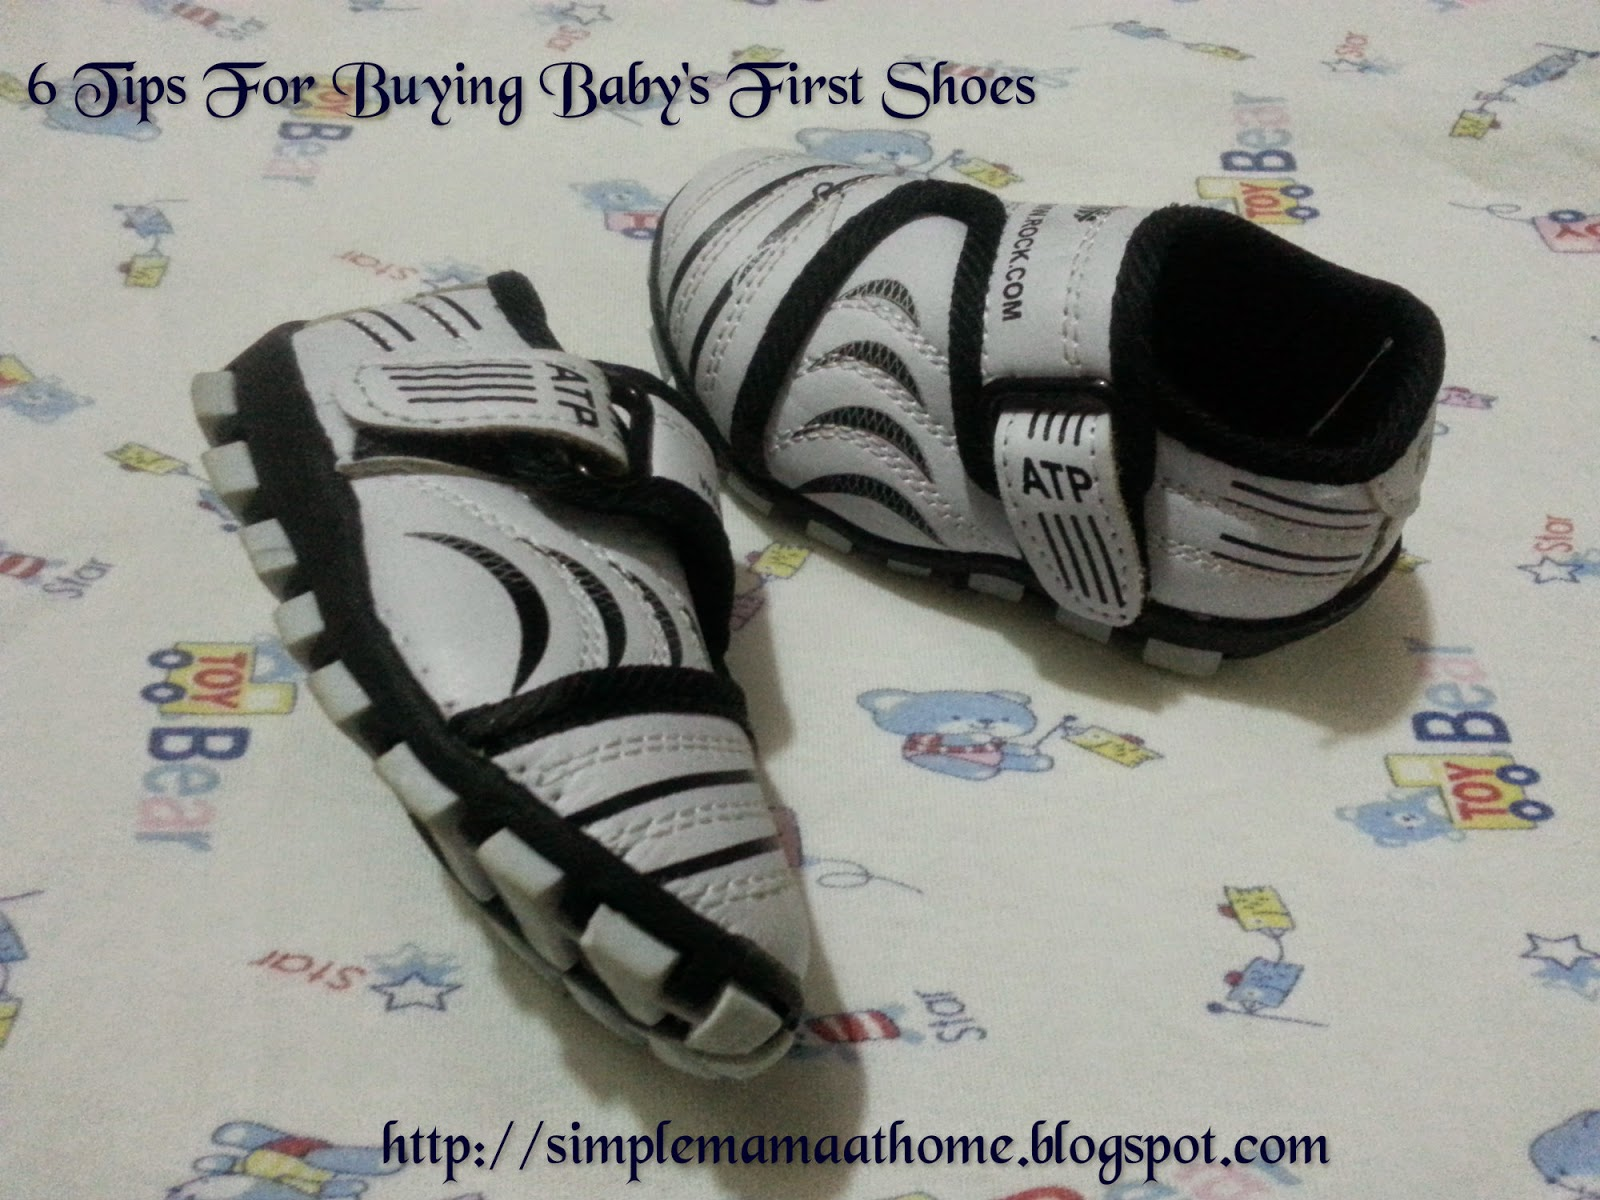 6 Tips For Buying Baby's First Shoes